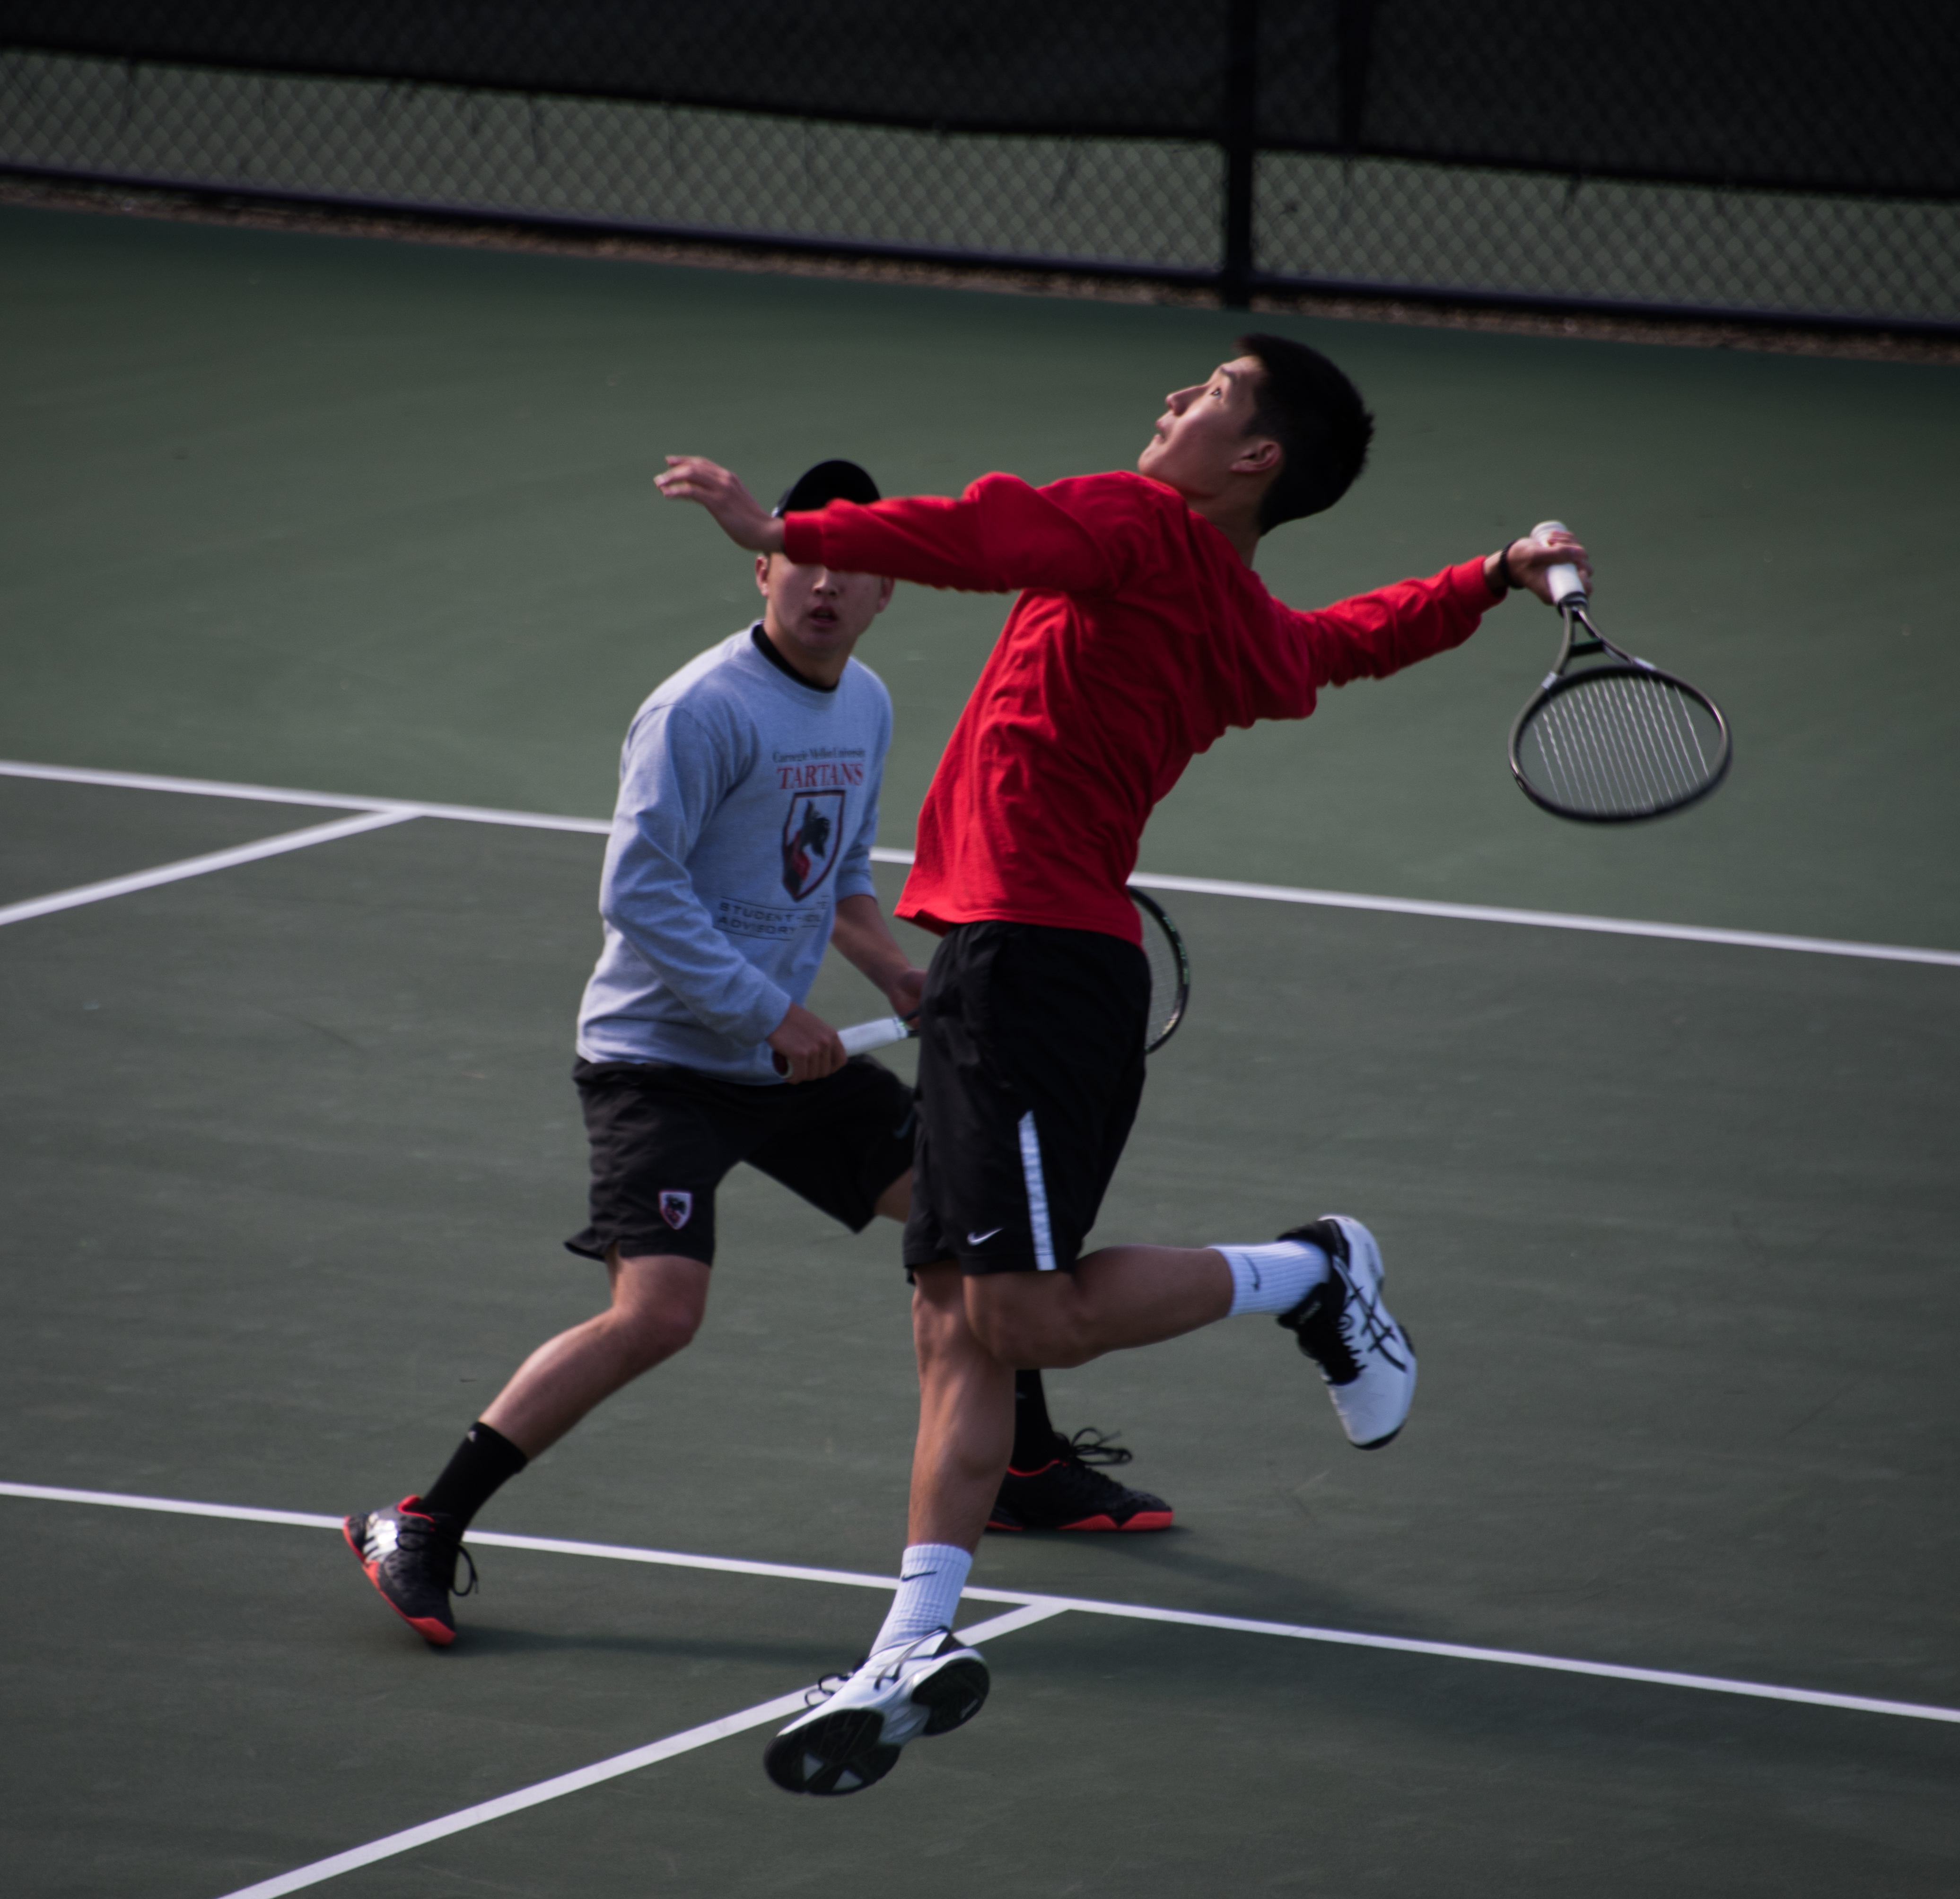 Doubles partners Jeffrey Chen and Kenny Zheng coordinate to return a volley in the match at home on Friday. (credit: Joshua Brown)